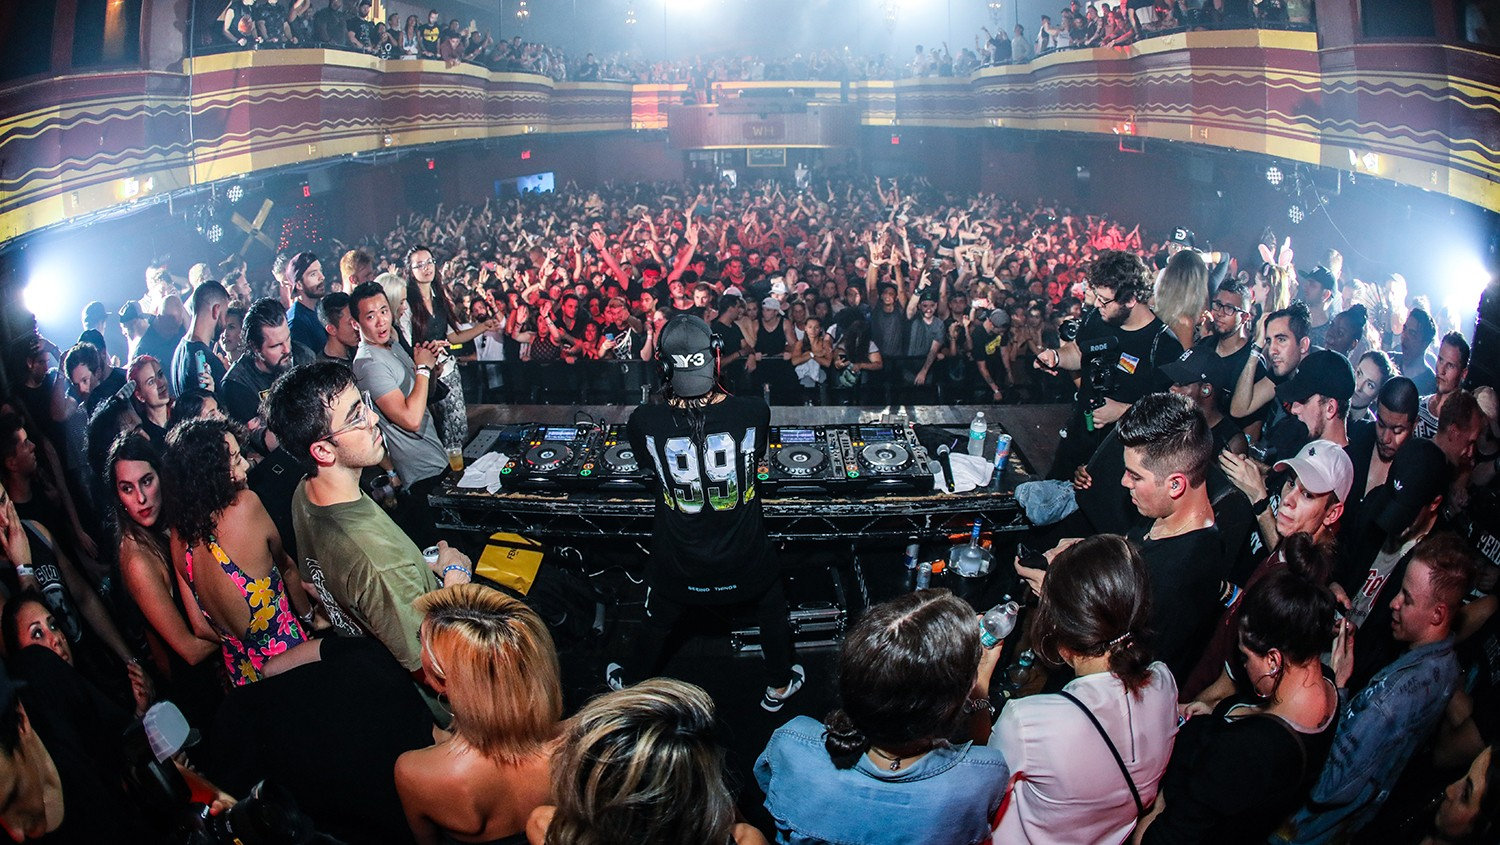 Skrillex performs at Webster Hall in New York City